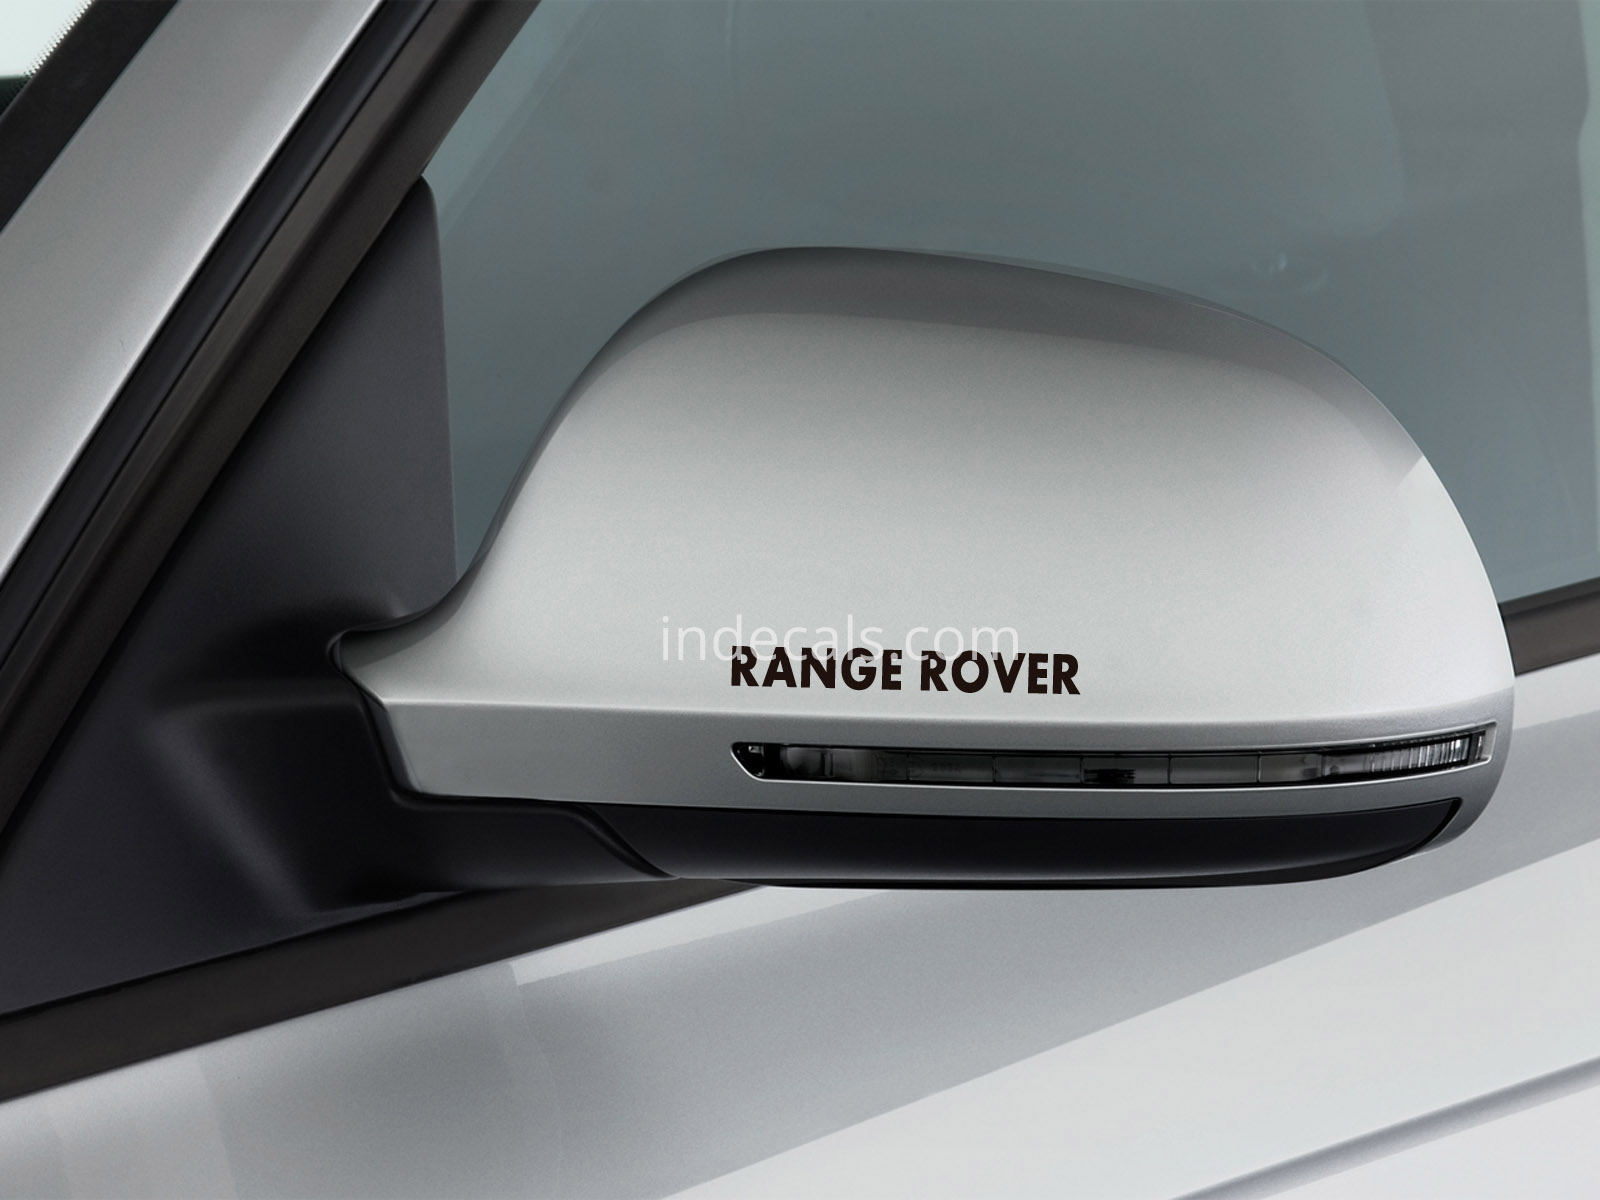 3 x Range Rover Stickers for Mirrors - Black